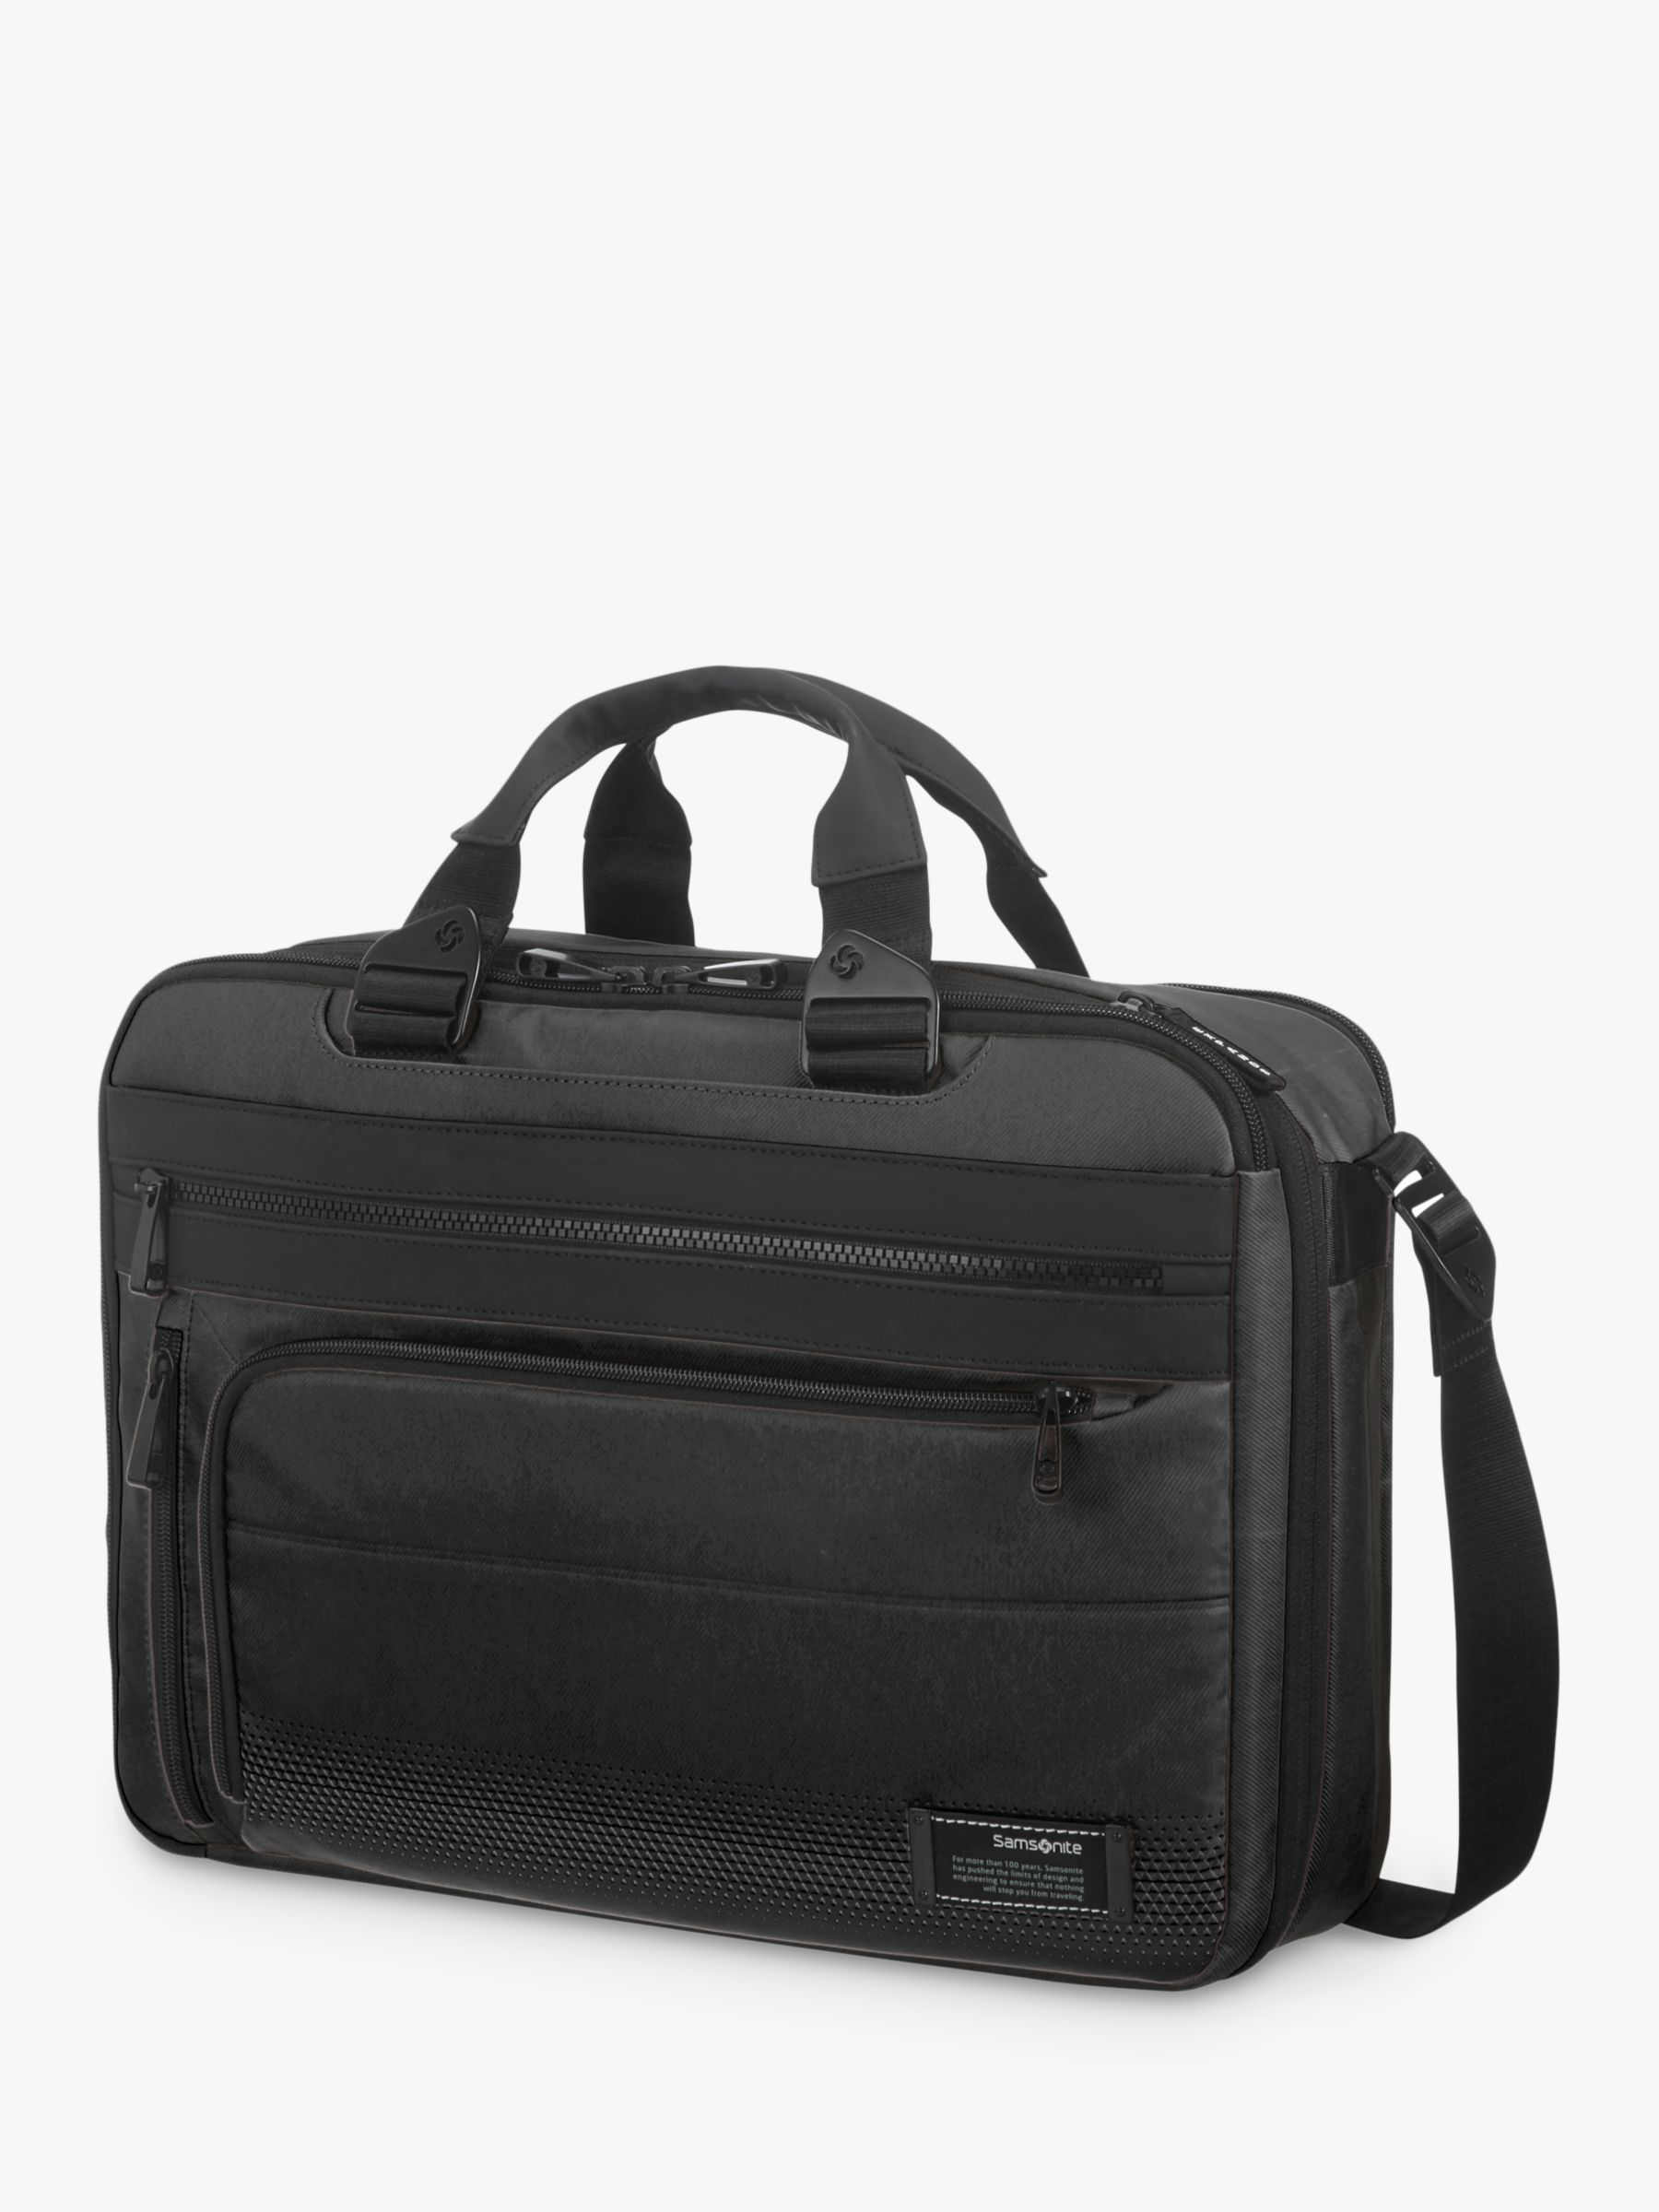 Samsonite Samsonite Cityvibe 2.0 3-Way 15.6 Laptop Expandable Work Bag, Jet Black